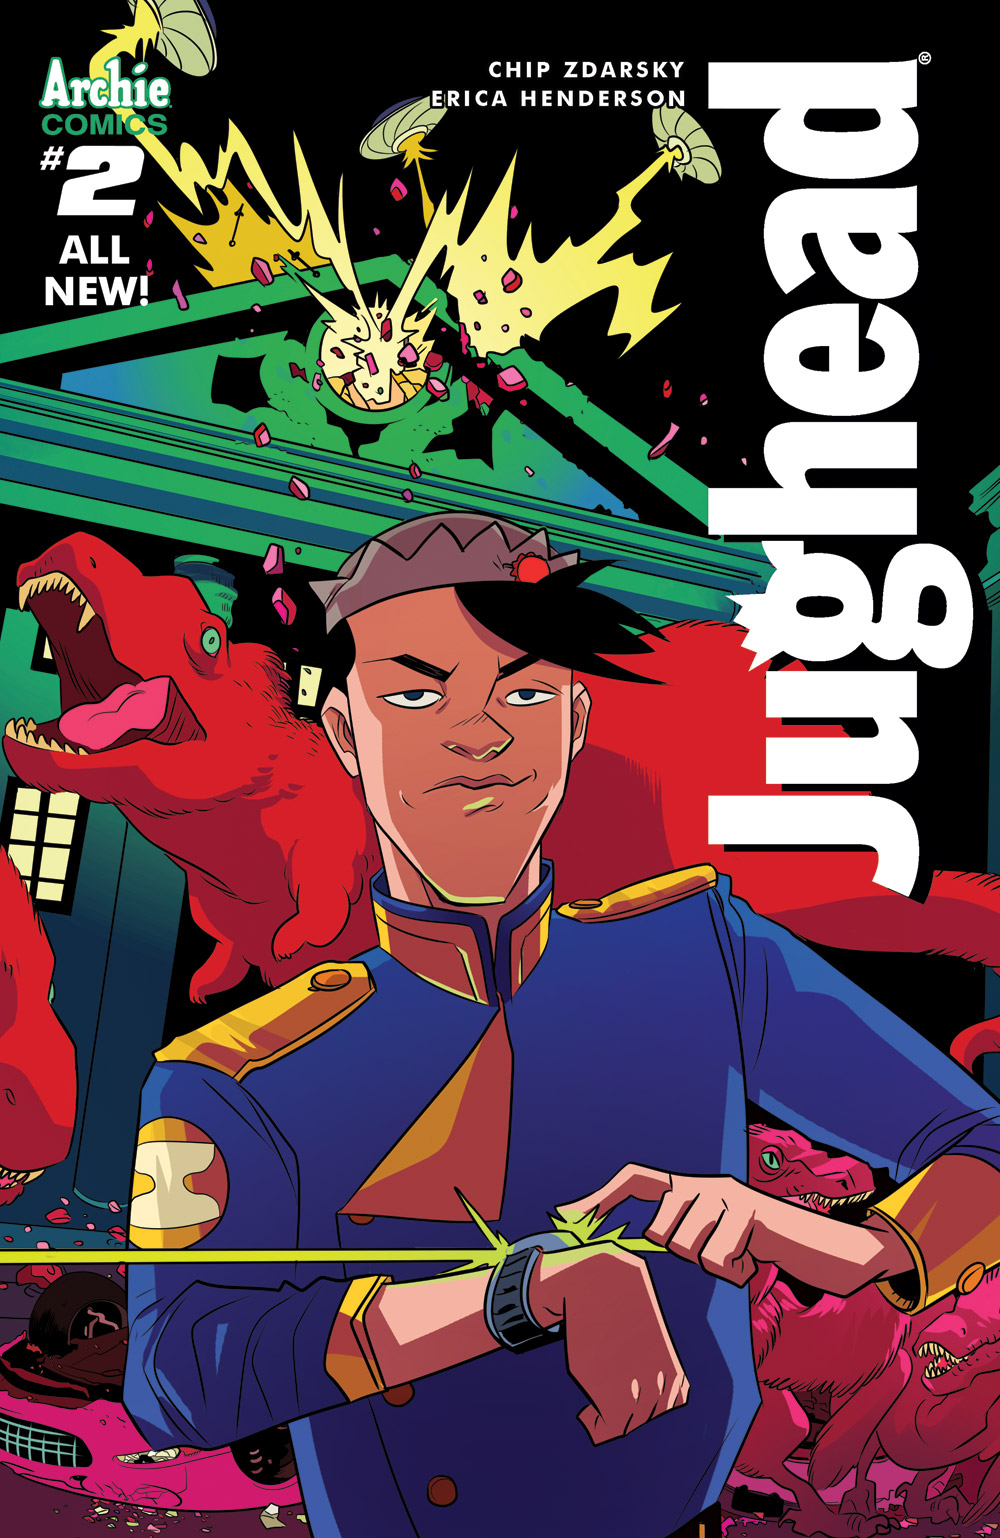 Last month's issue of Jughead was awesome! It's clear that under a competent and creative team of artists, this classic character has been revitalized for a modern age.